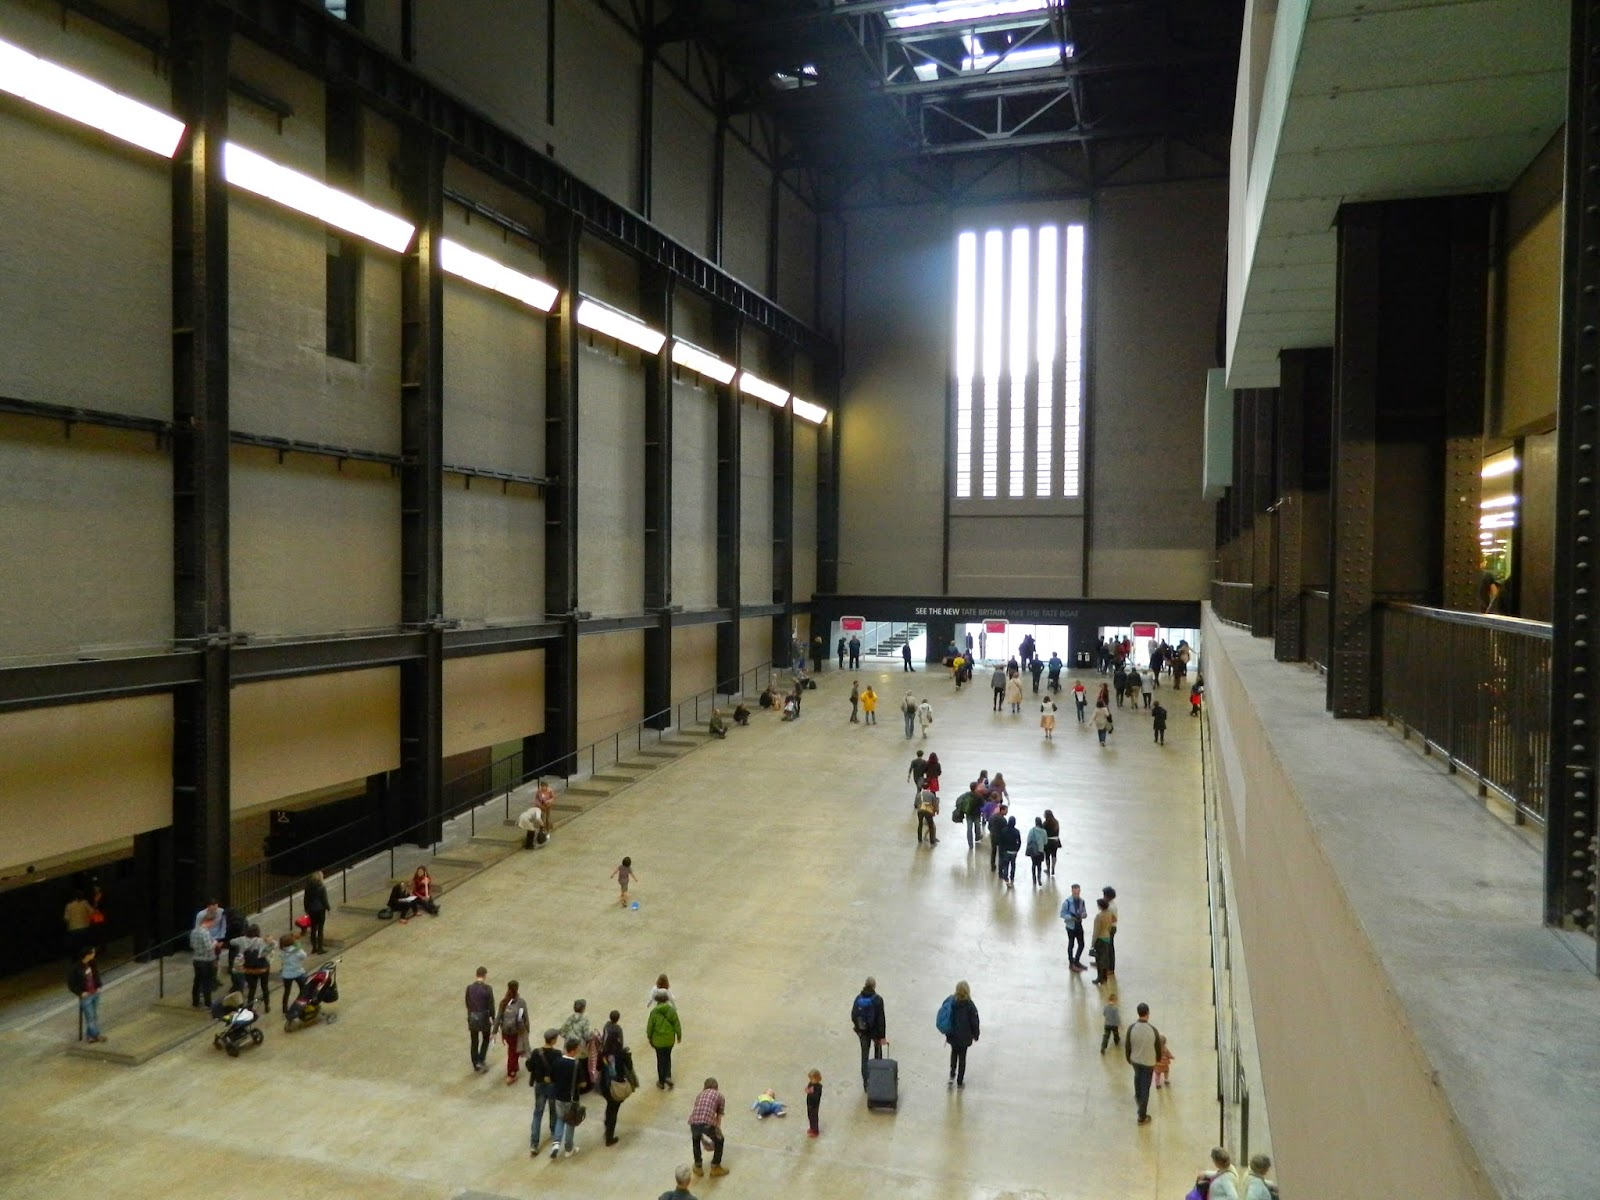 tate gallery inside architecture industrial people lines